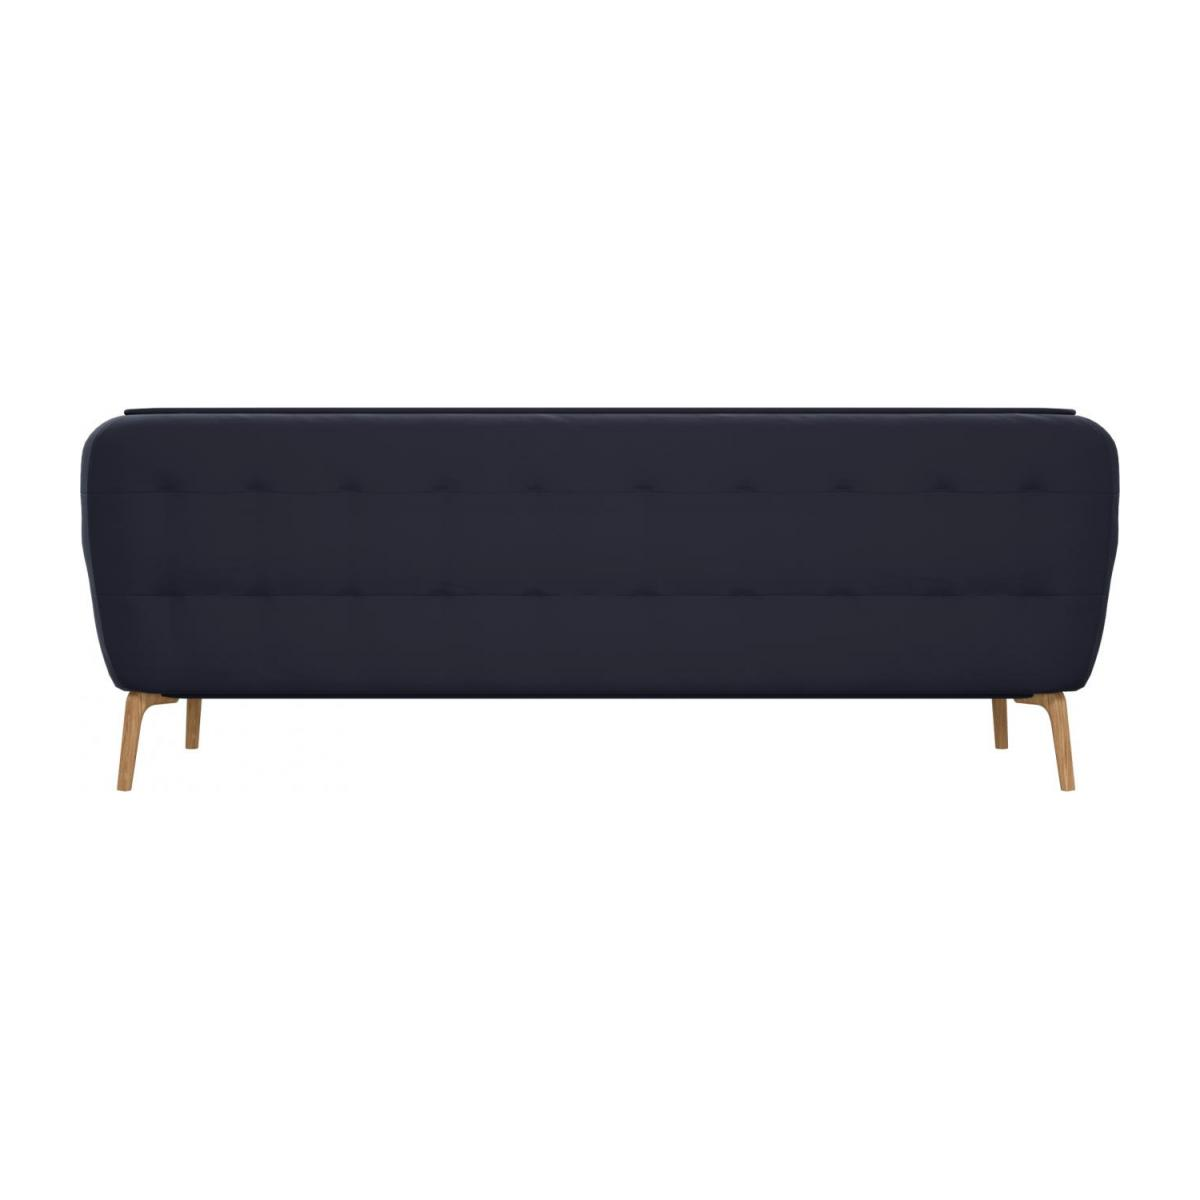 3 seater sofa in Super Velvet fabric, dark blue and natural oak feet n°3